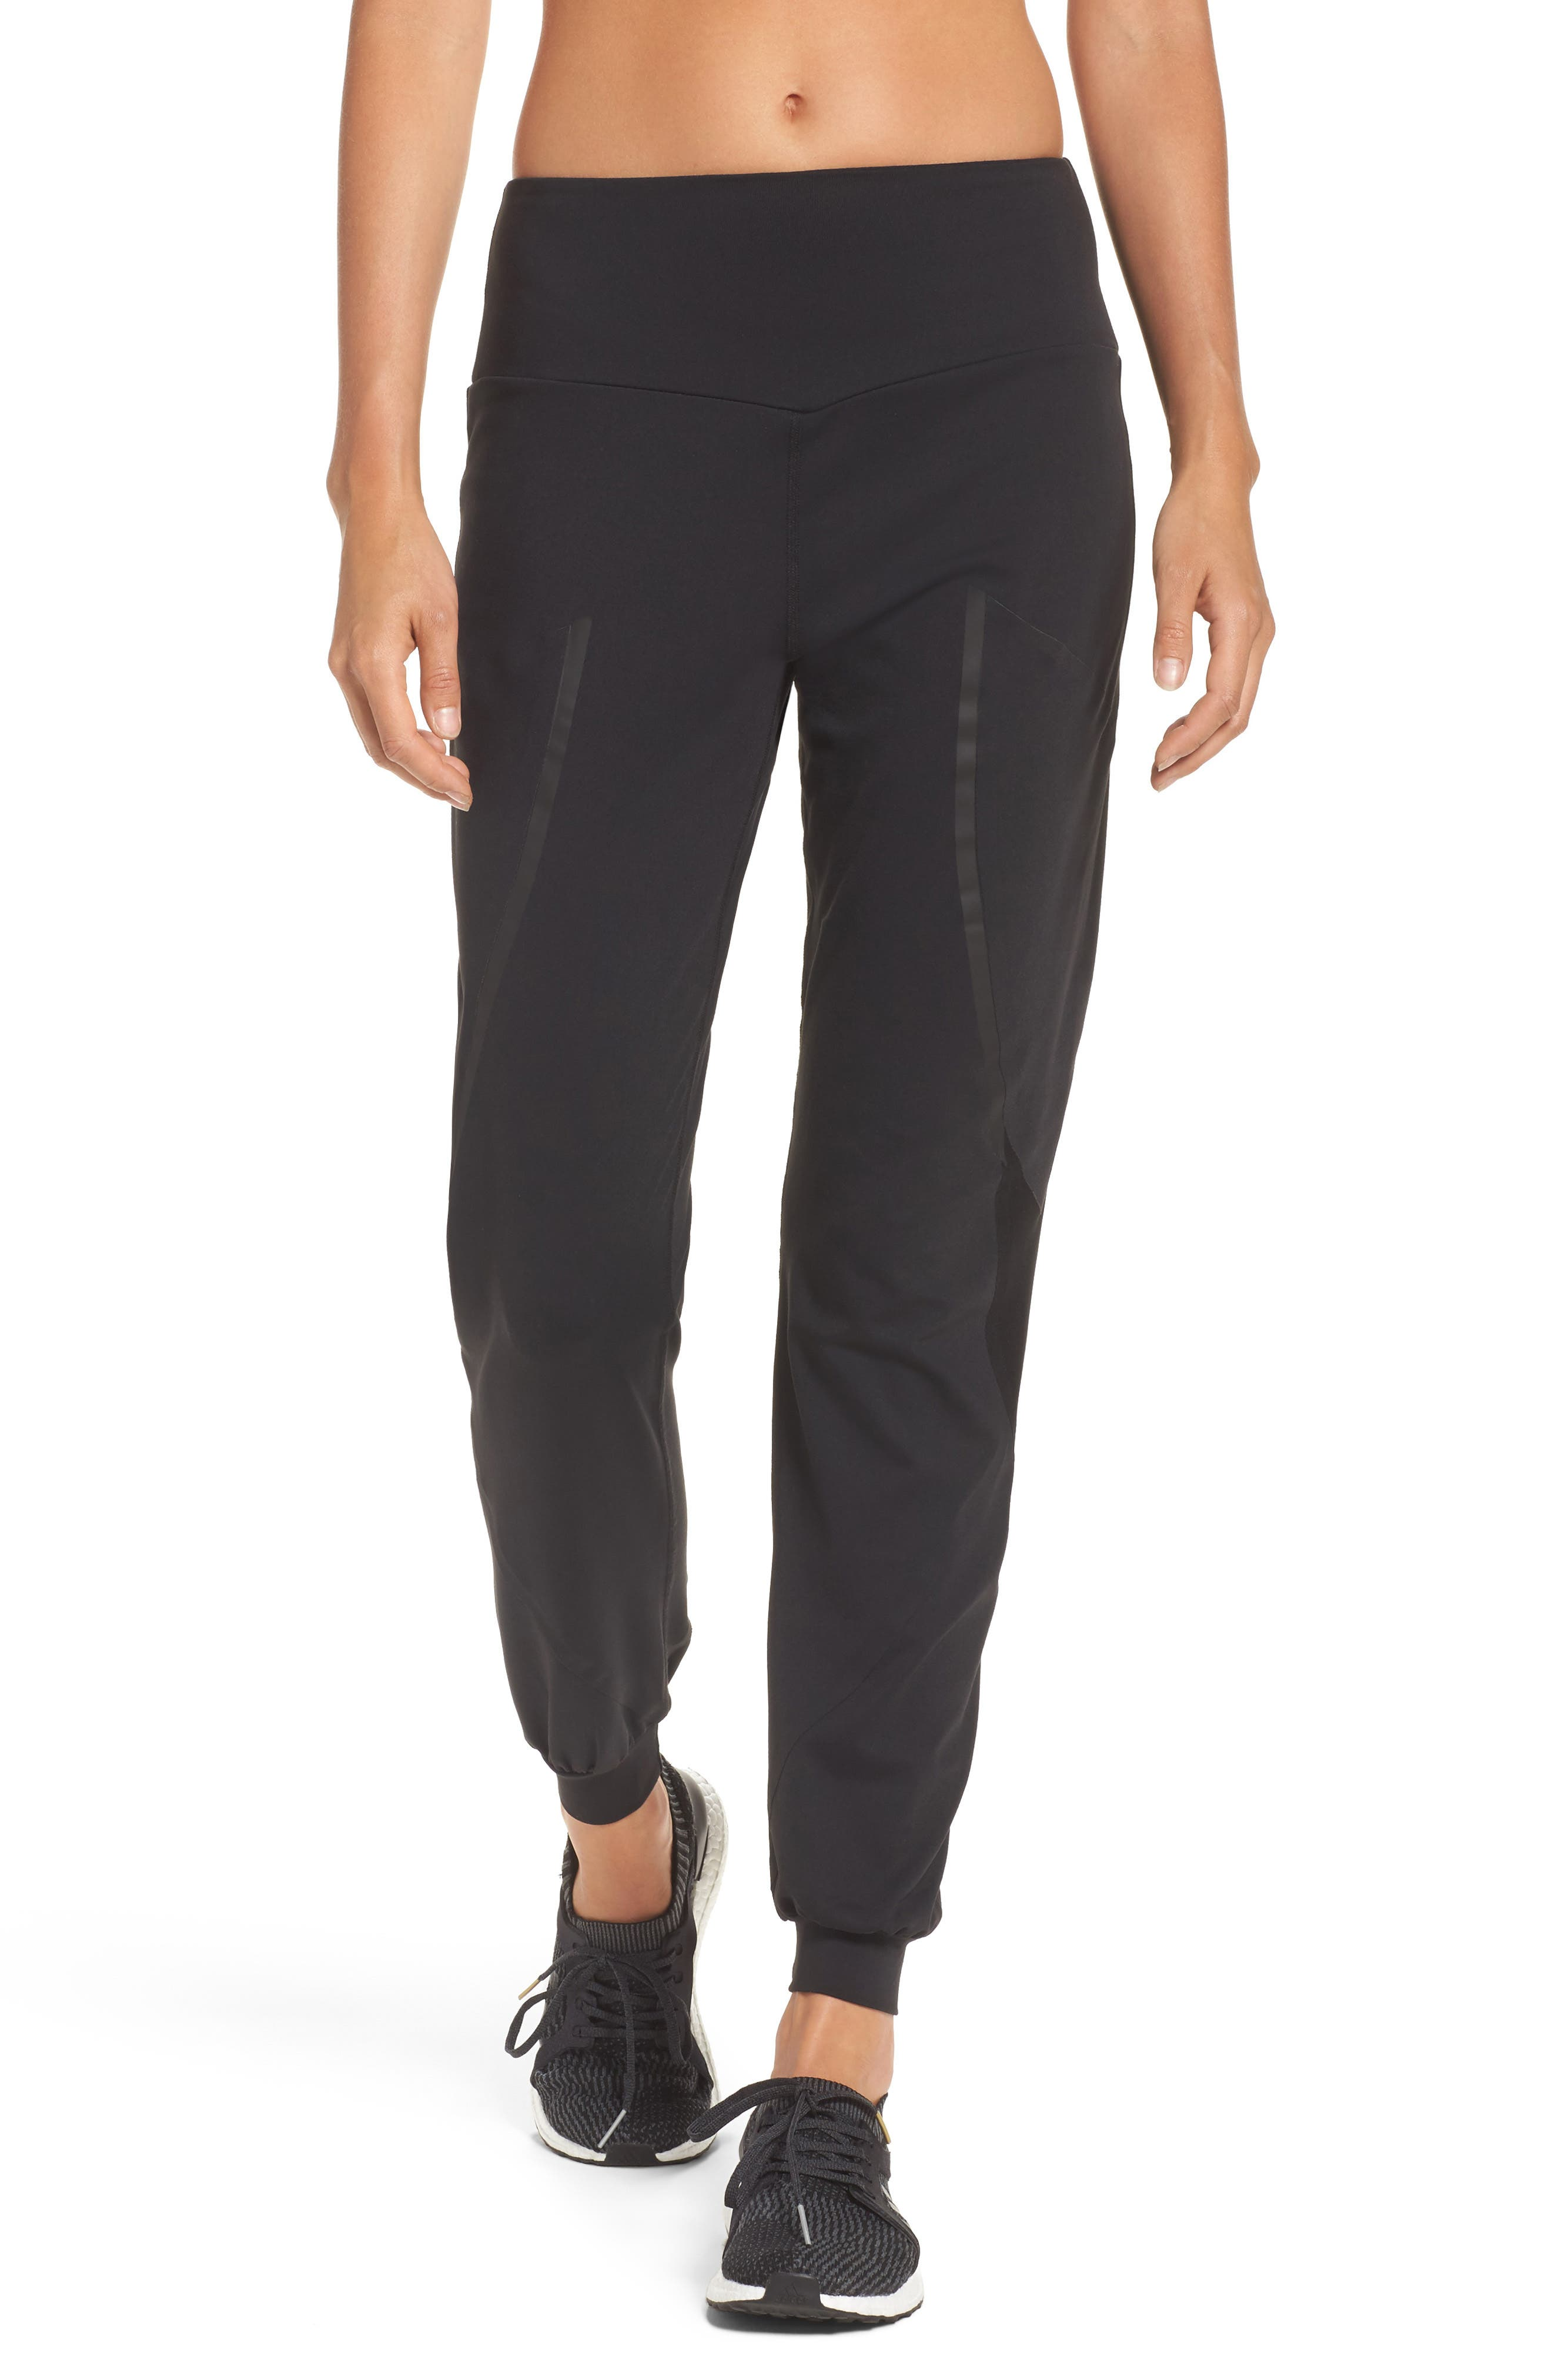 Main Image - BoomBoom Athletica Track Pants